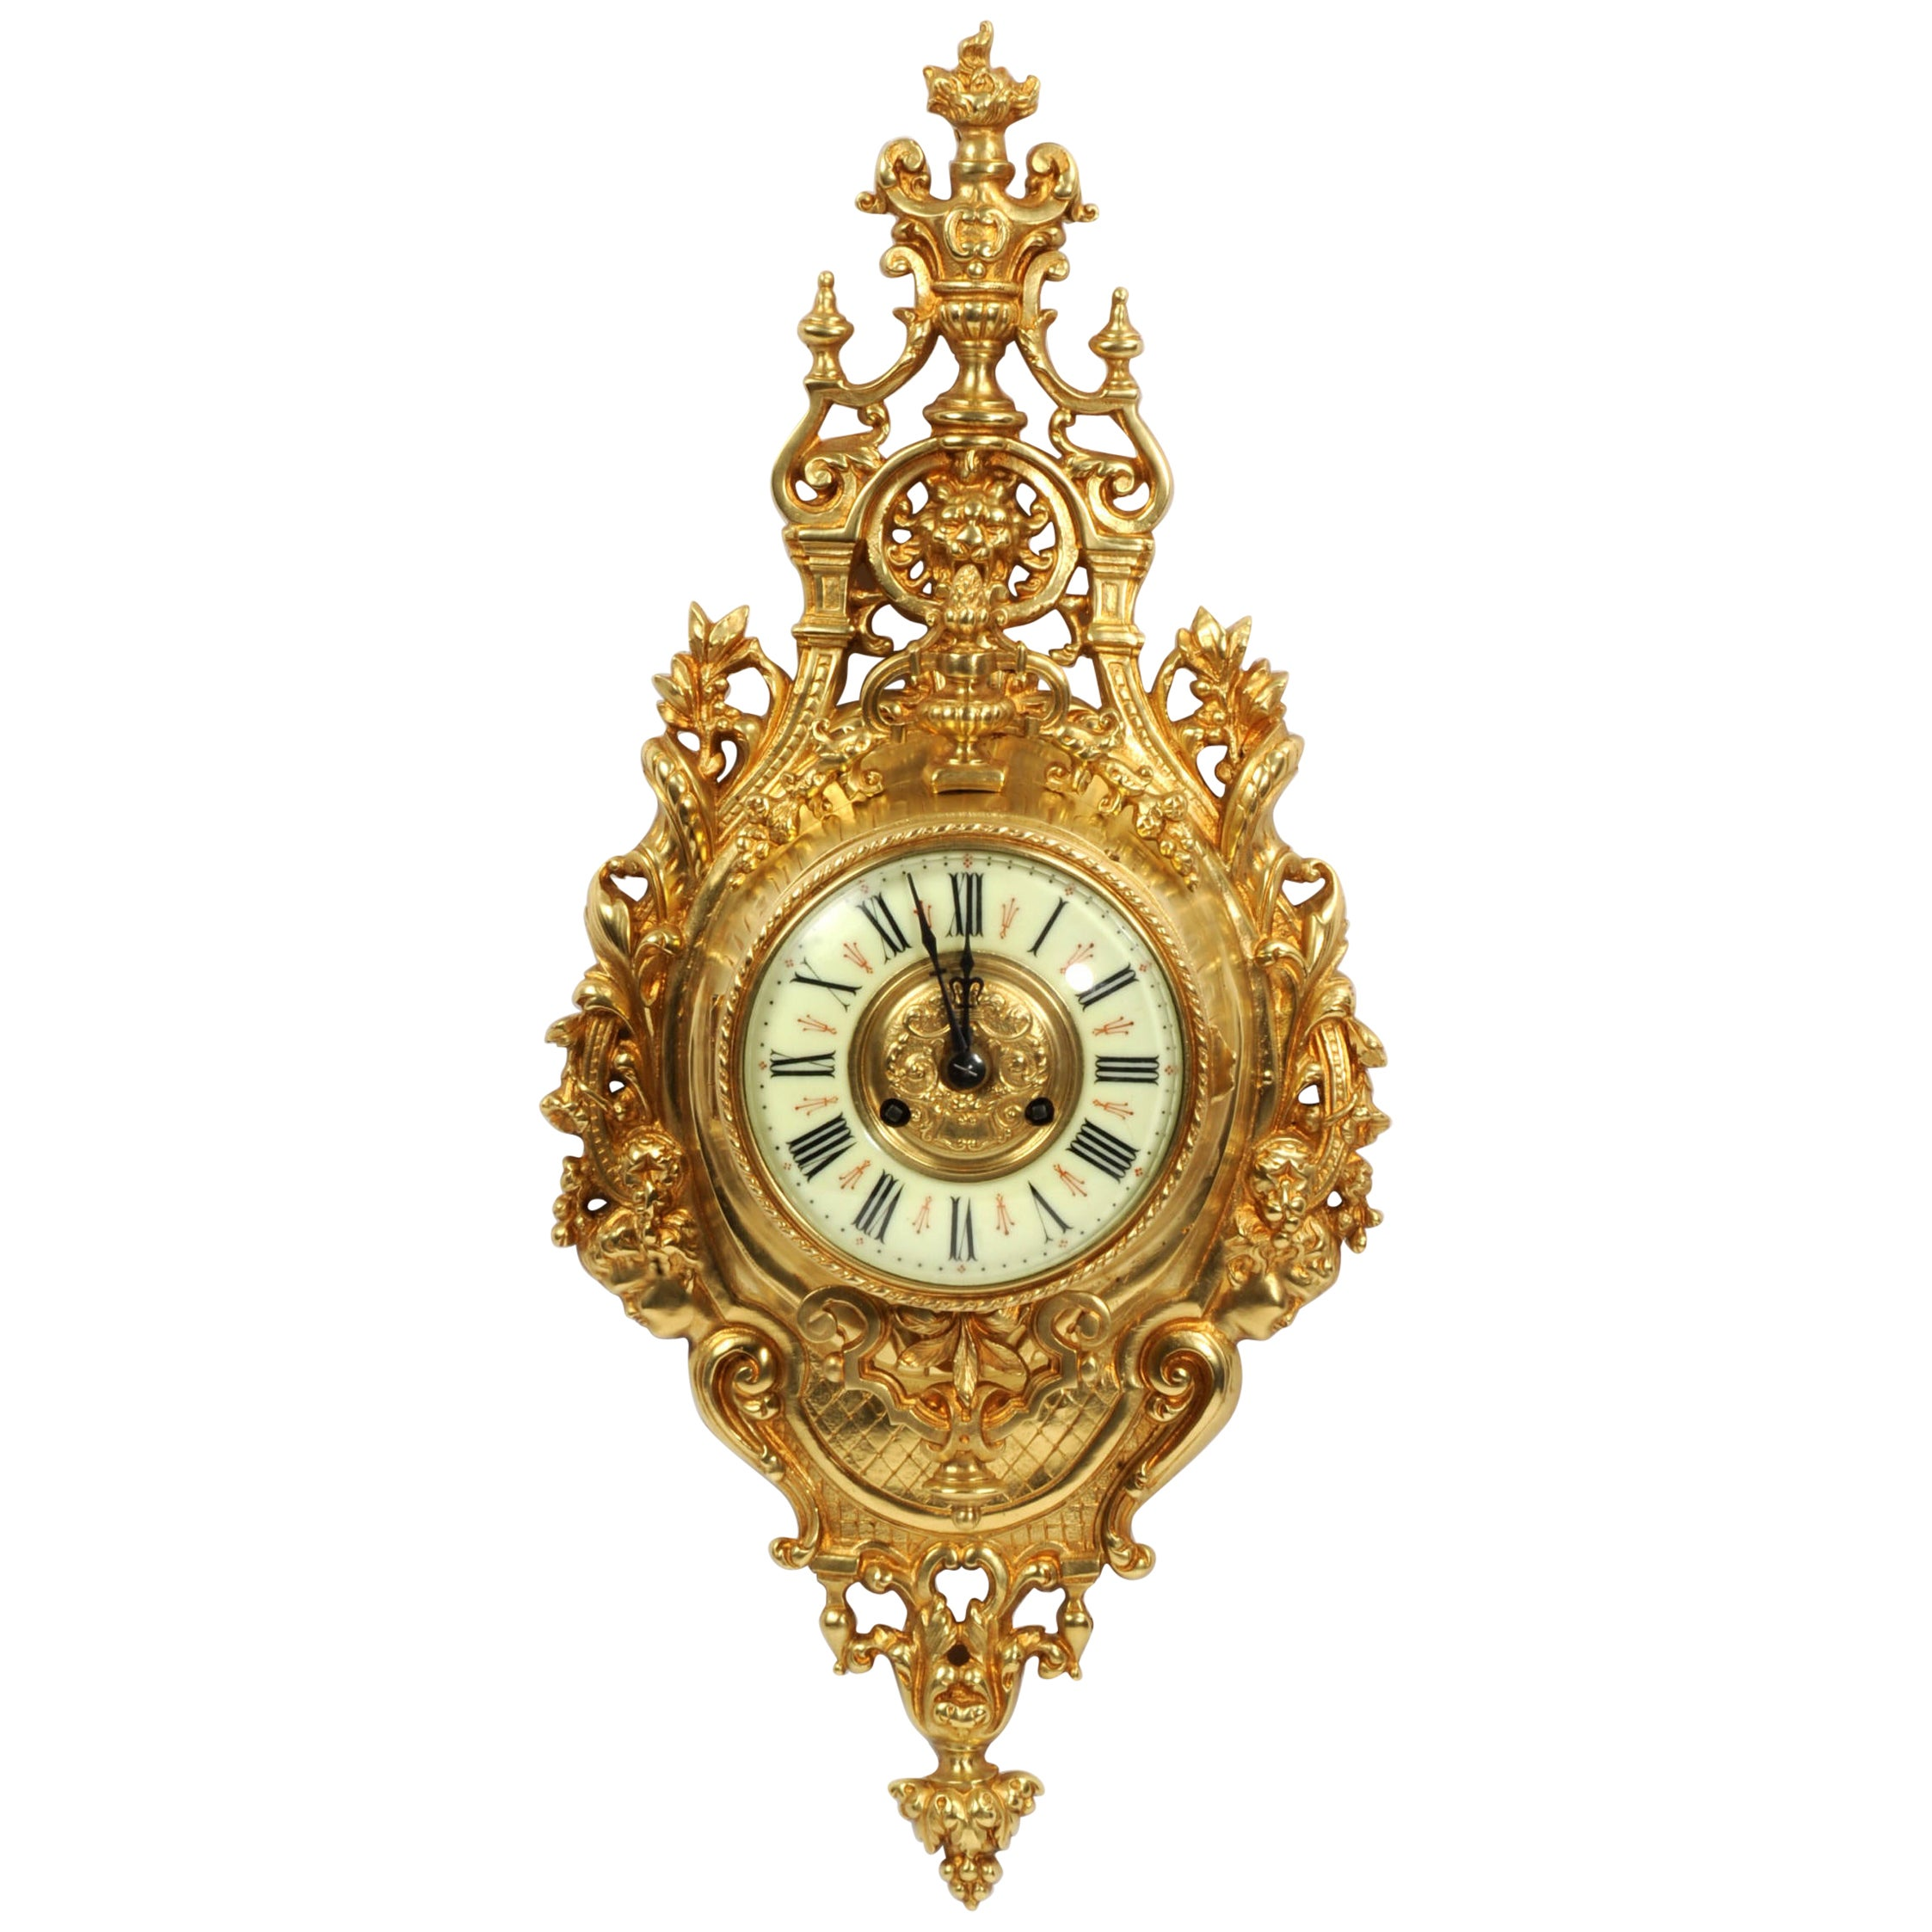 Antique French Gilt Bronze Baroque Cartel Wall Clock by Japy Freres